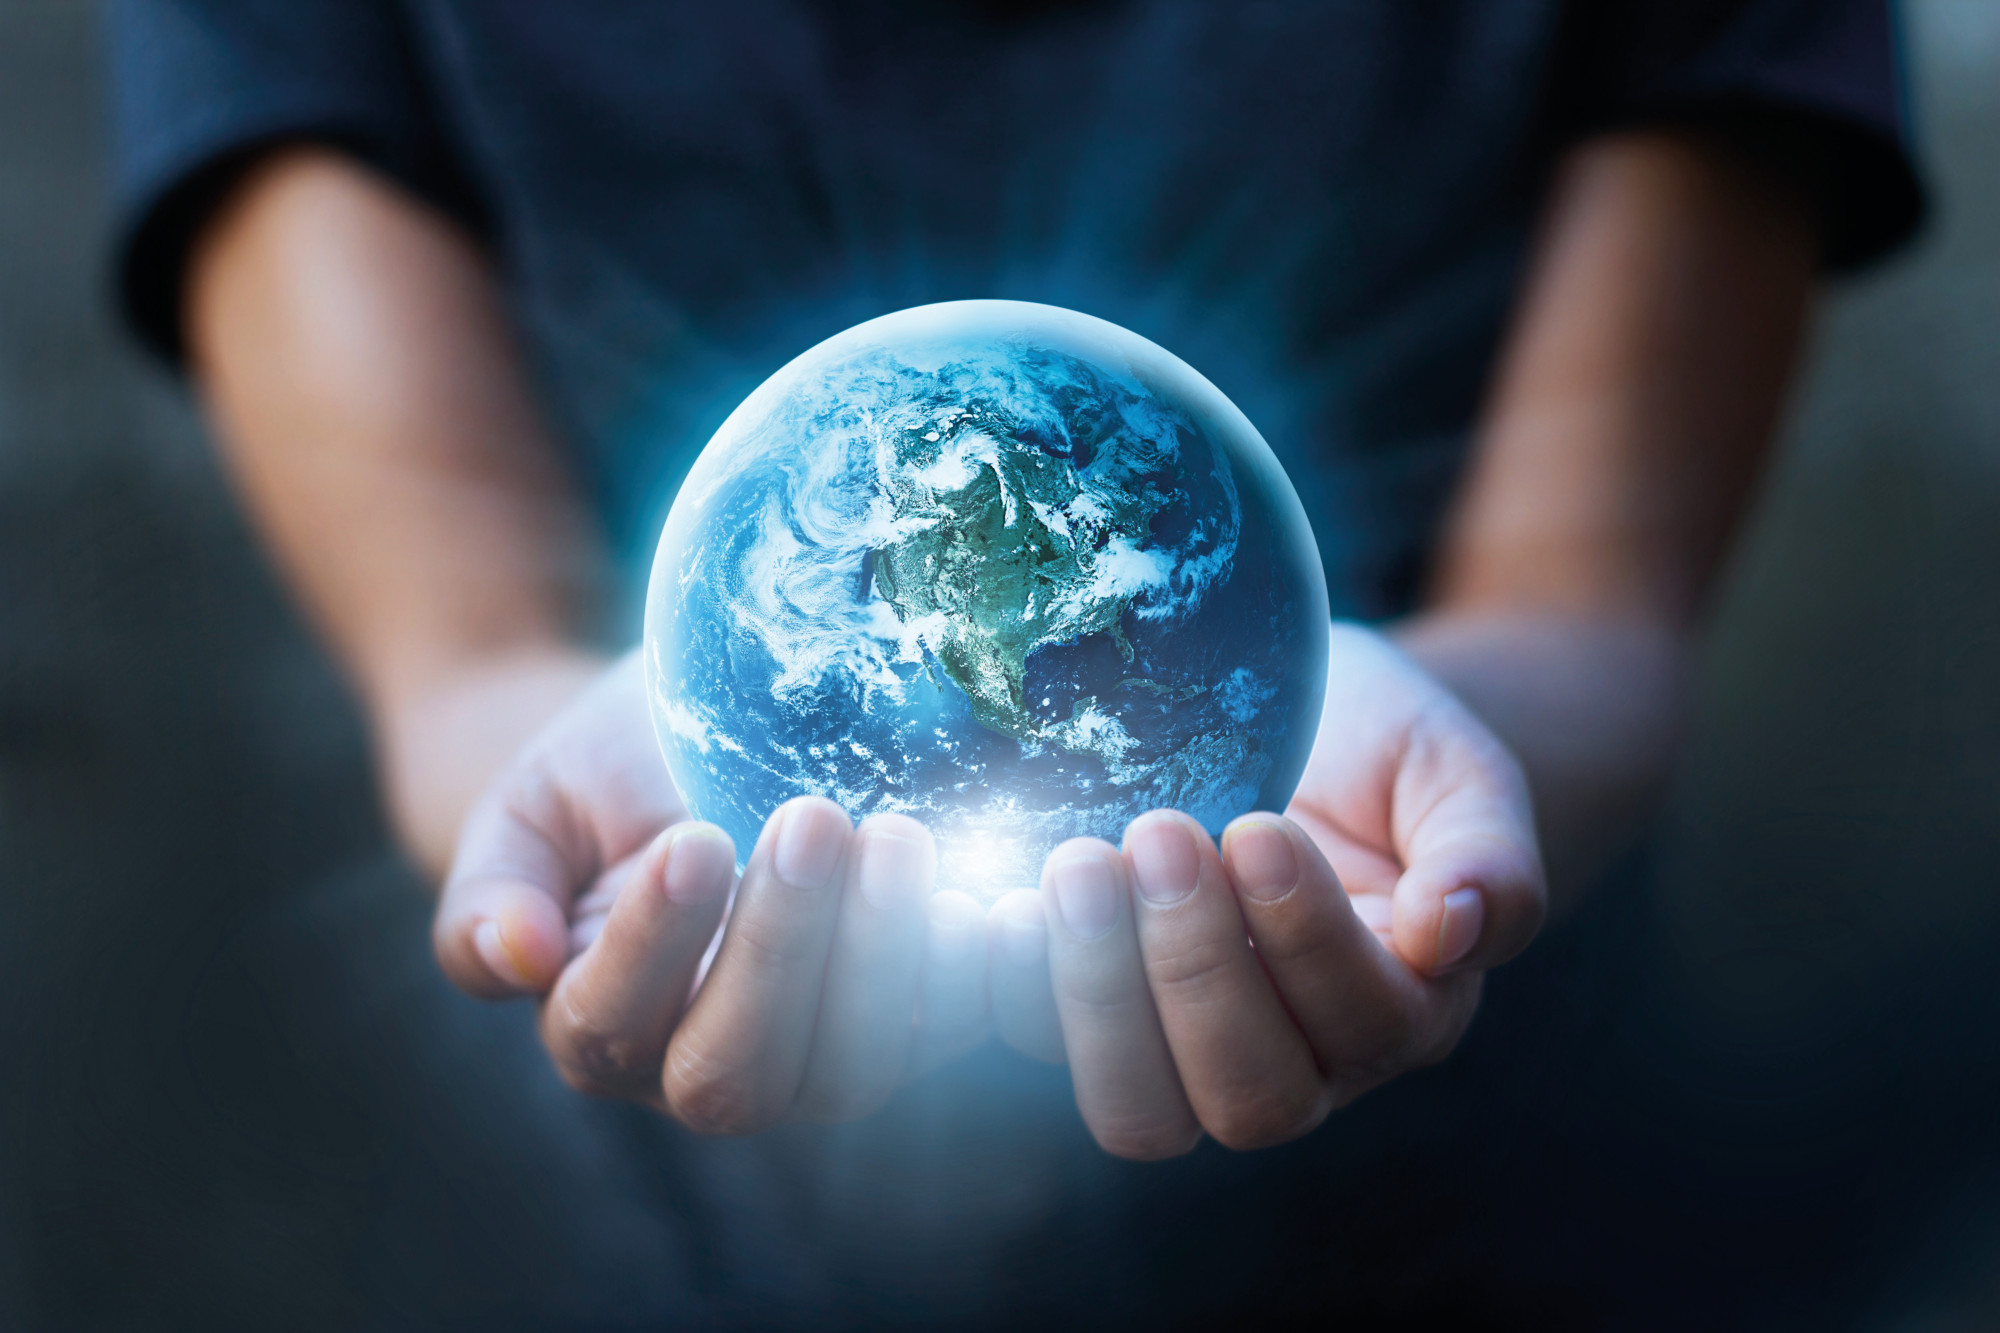 Human hands holding blue earth